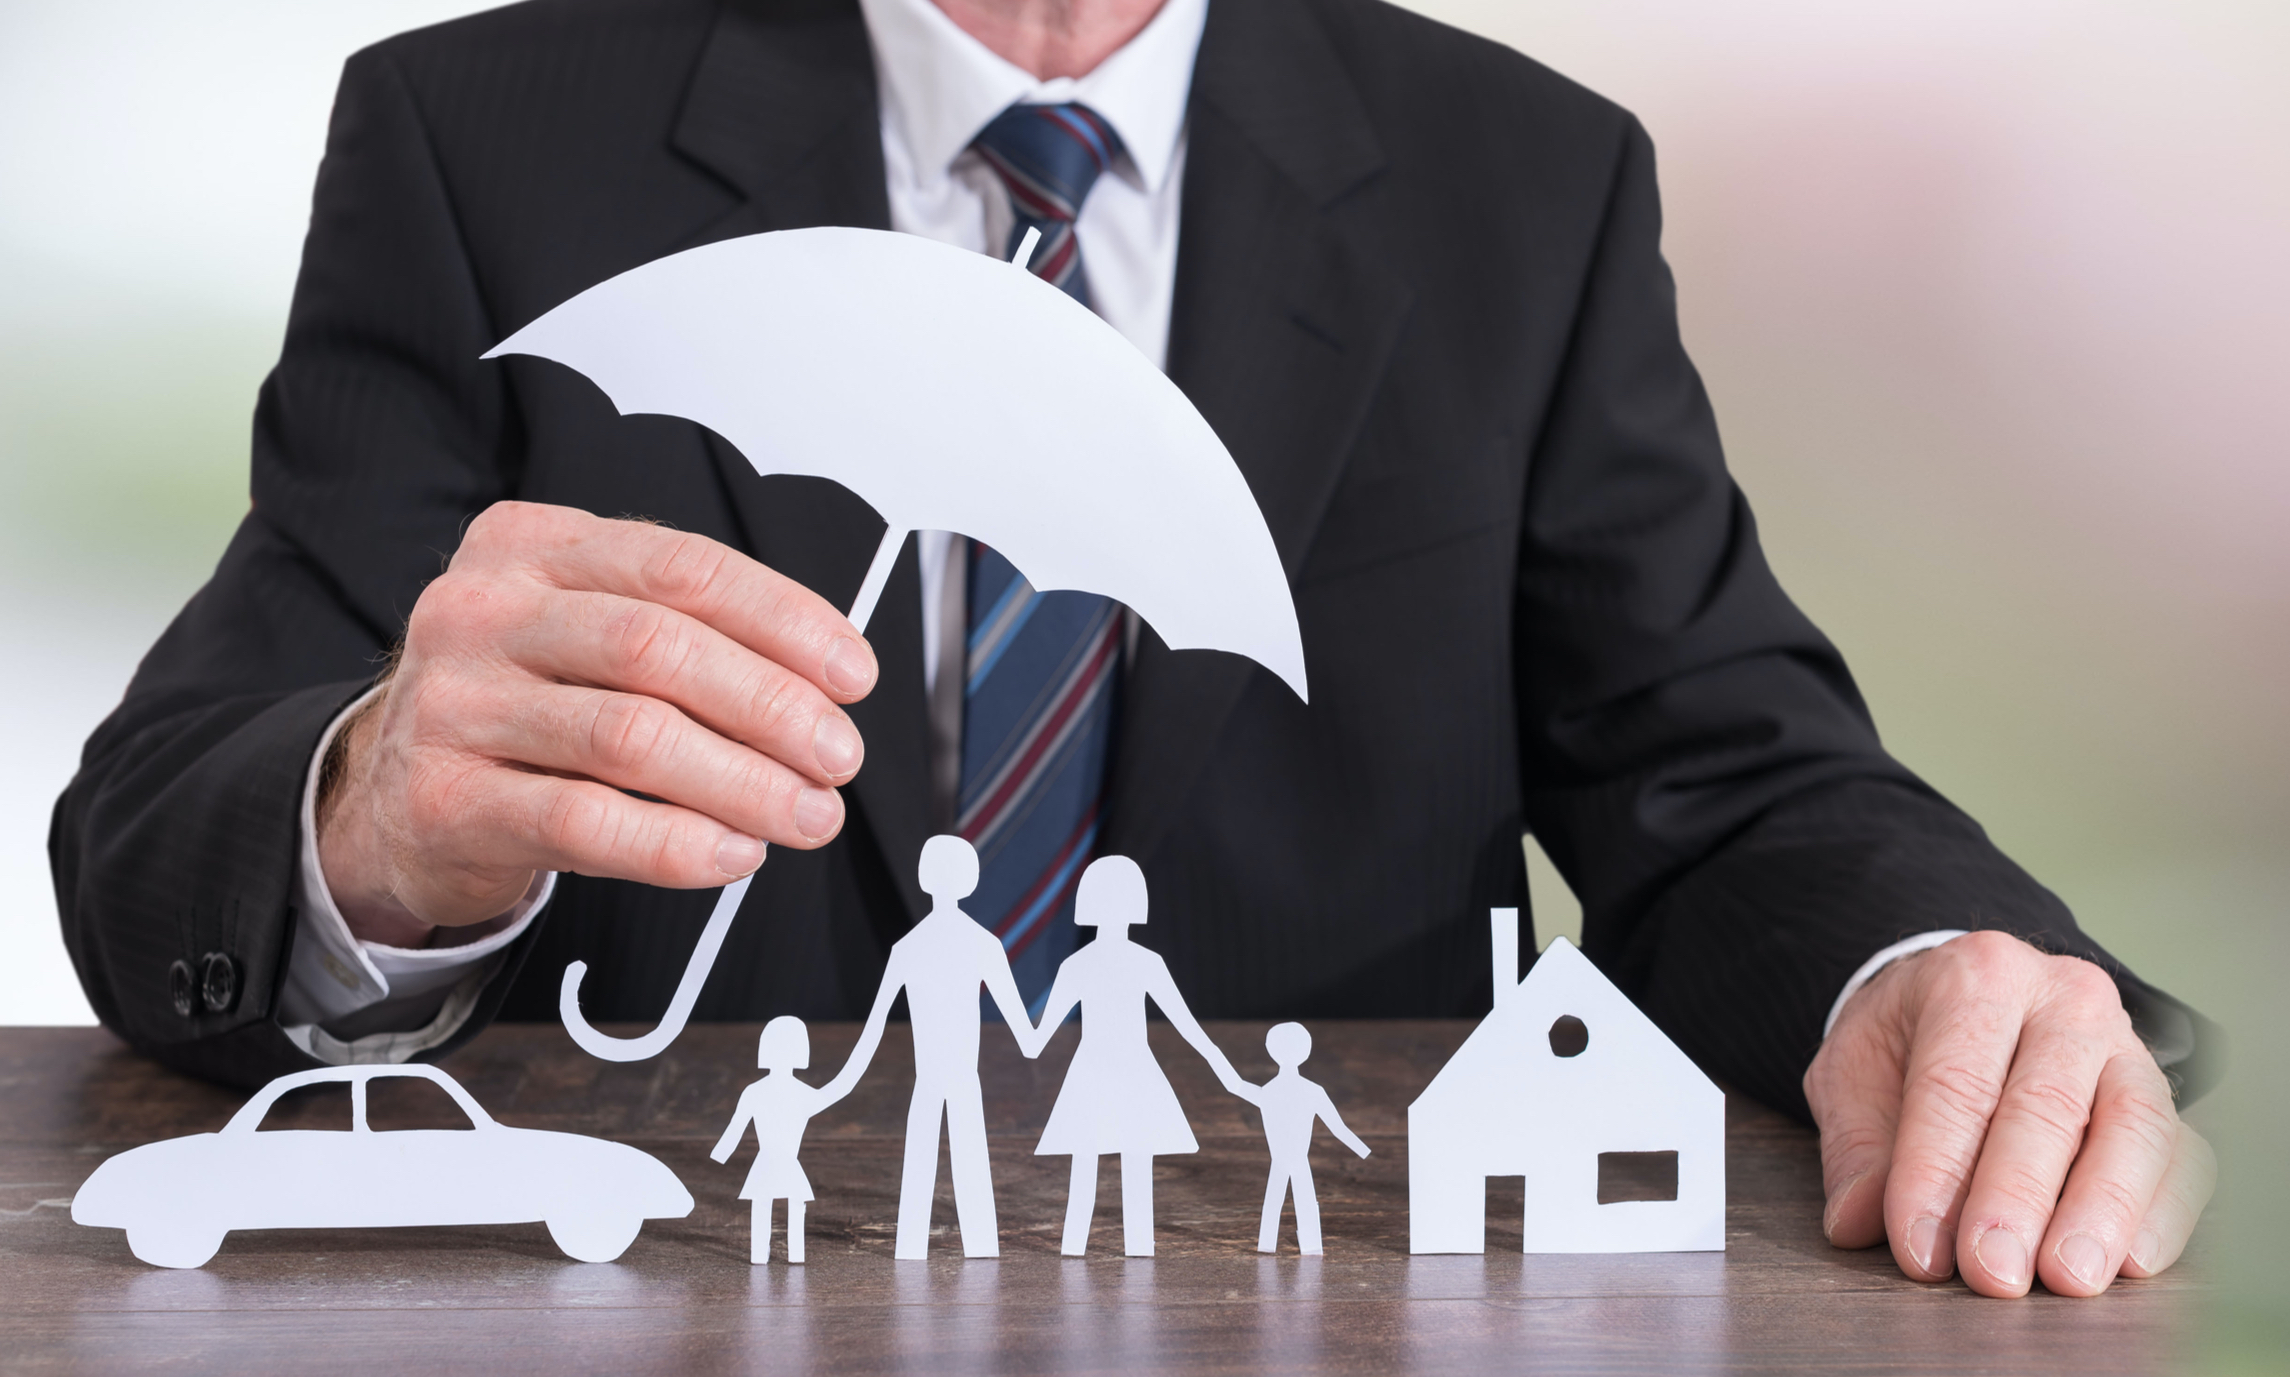 It is imperative to protect your wealth with the right insurance coverage